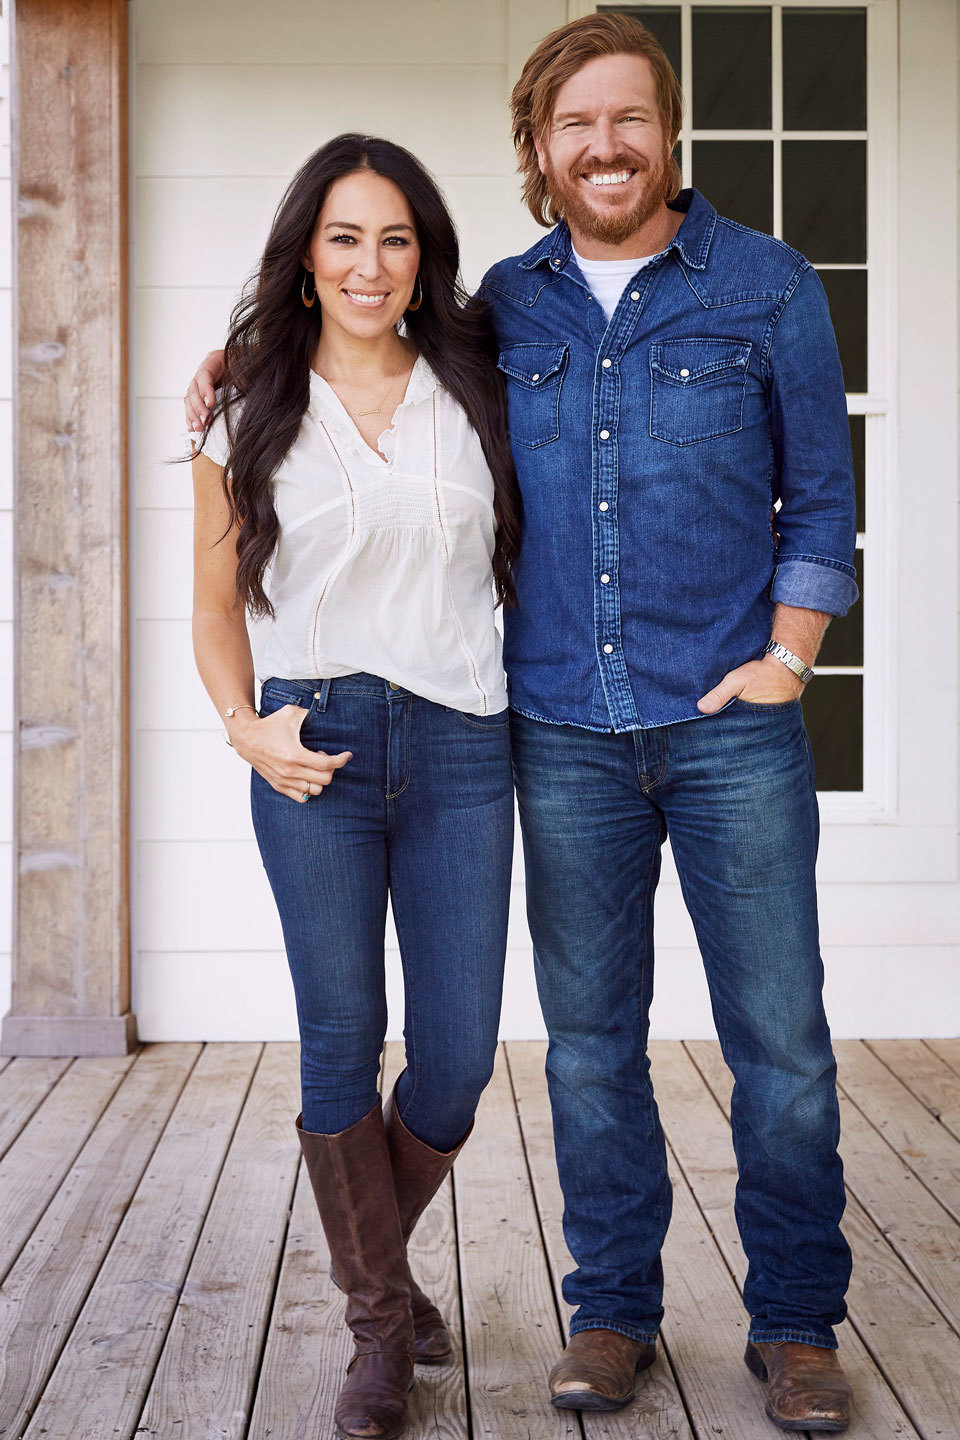 The First Look at Chip & Joanna Gaines's New Target Line